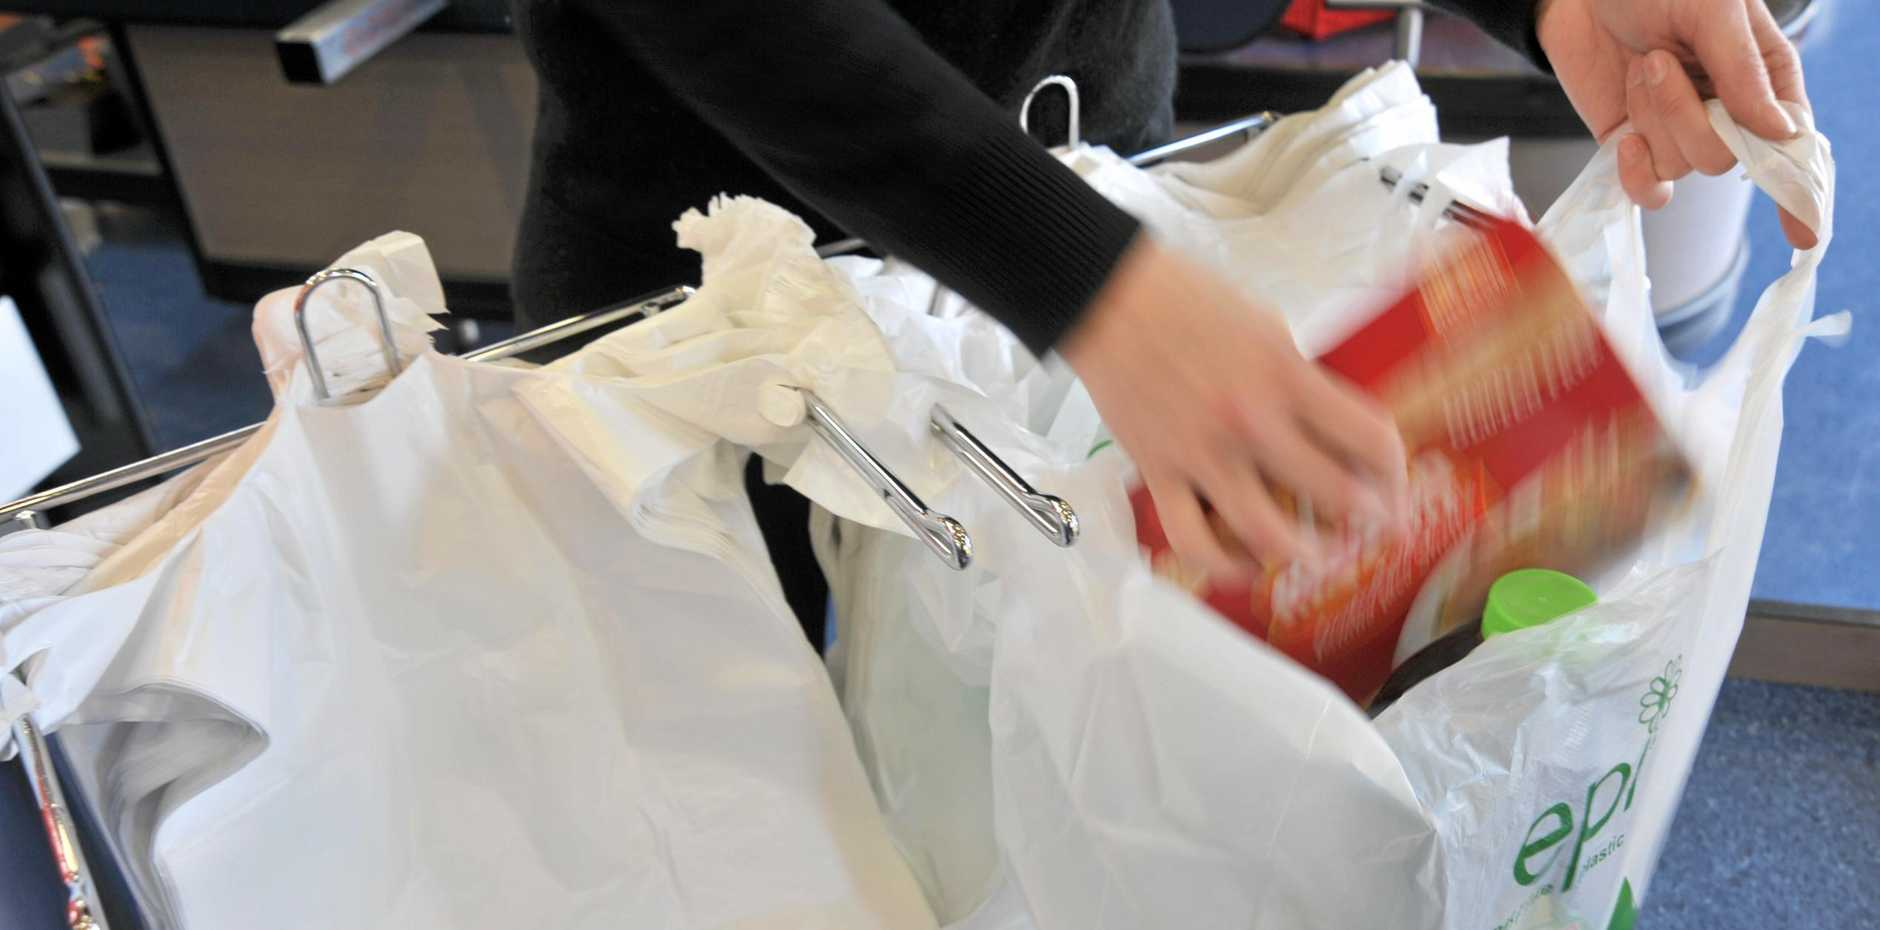 One simple trick can help you at the checkout when faced with no single-use bag options.